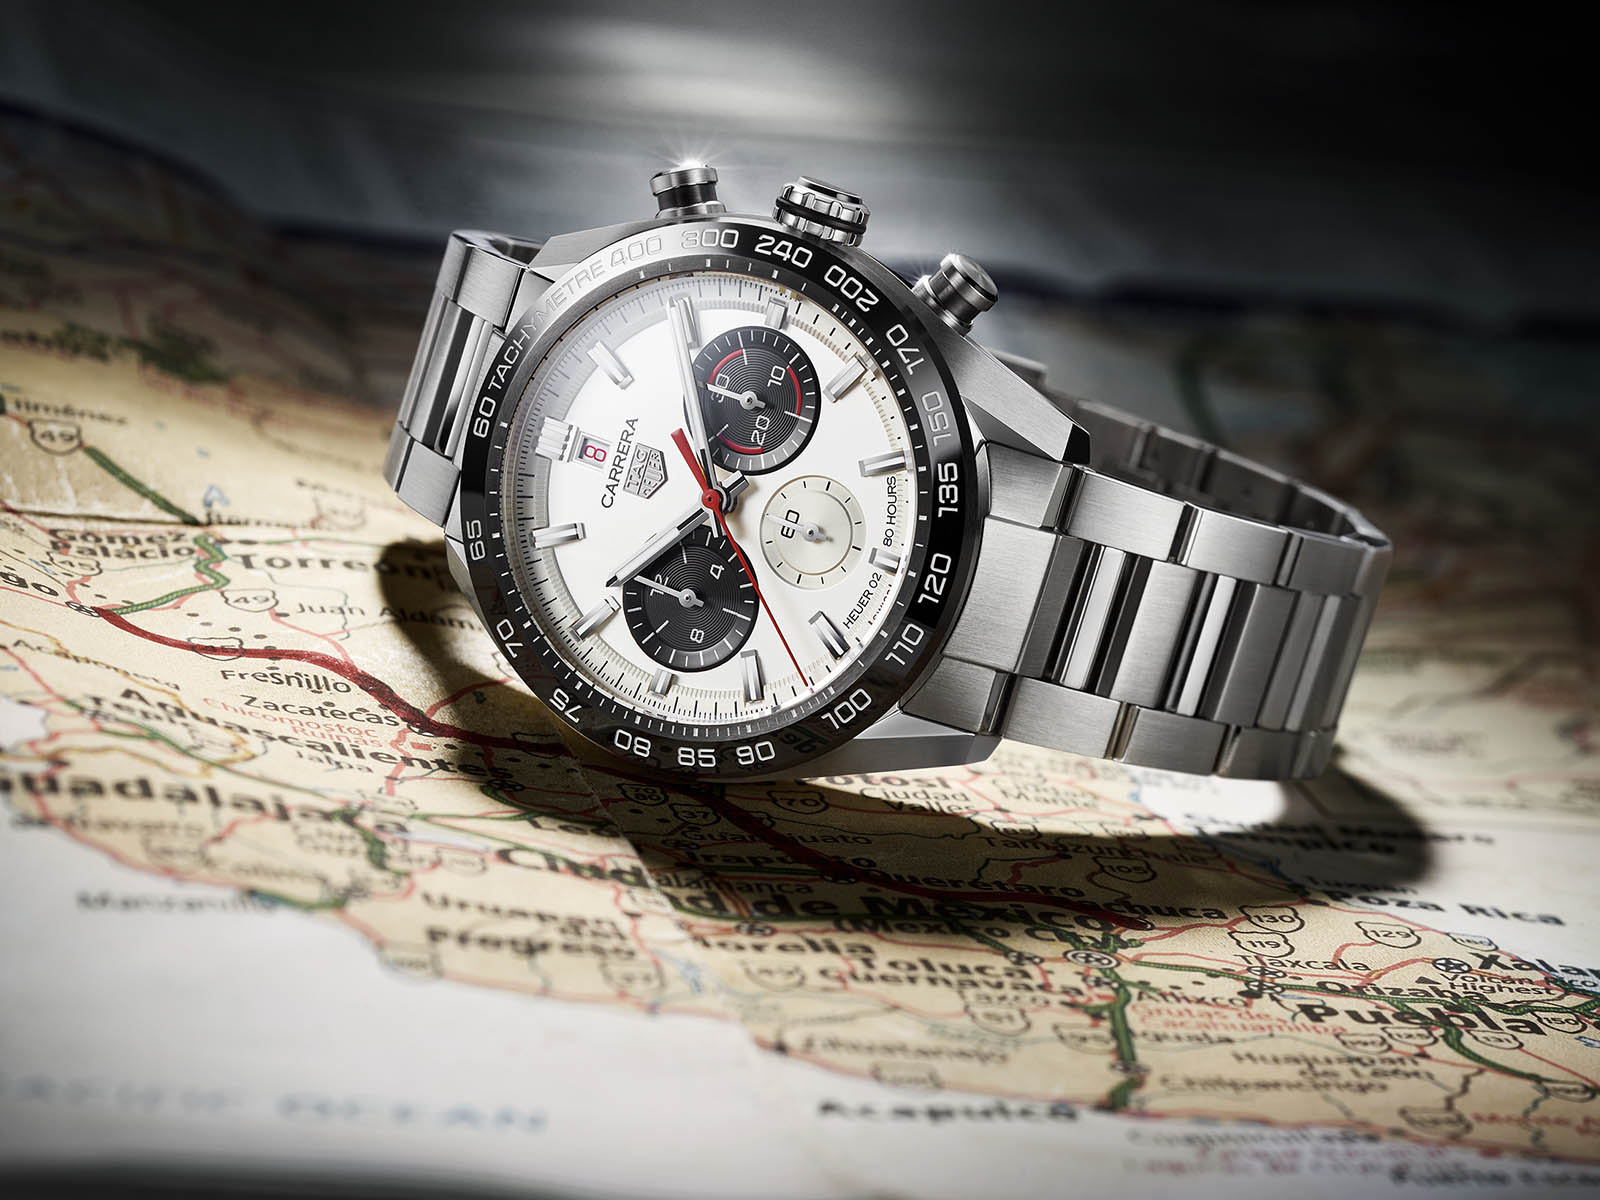 cbn2a1d-ba0643-tag-heuer-carrera-sport-chronograph-160-years-special-edition-1.jpg